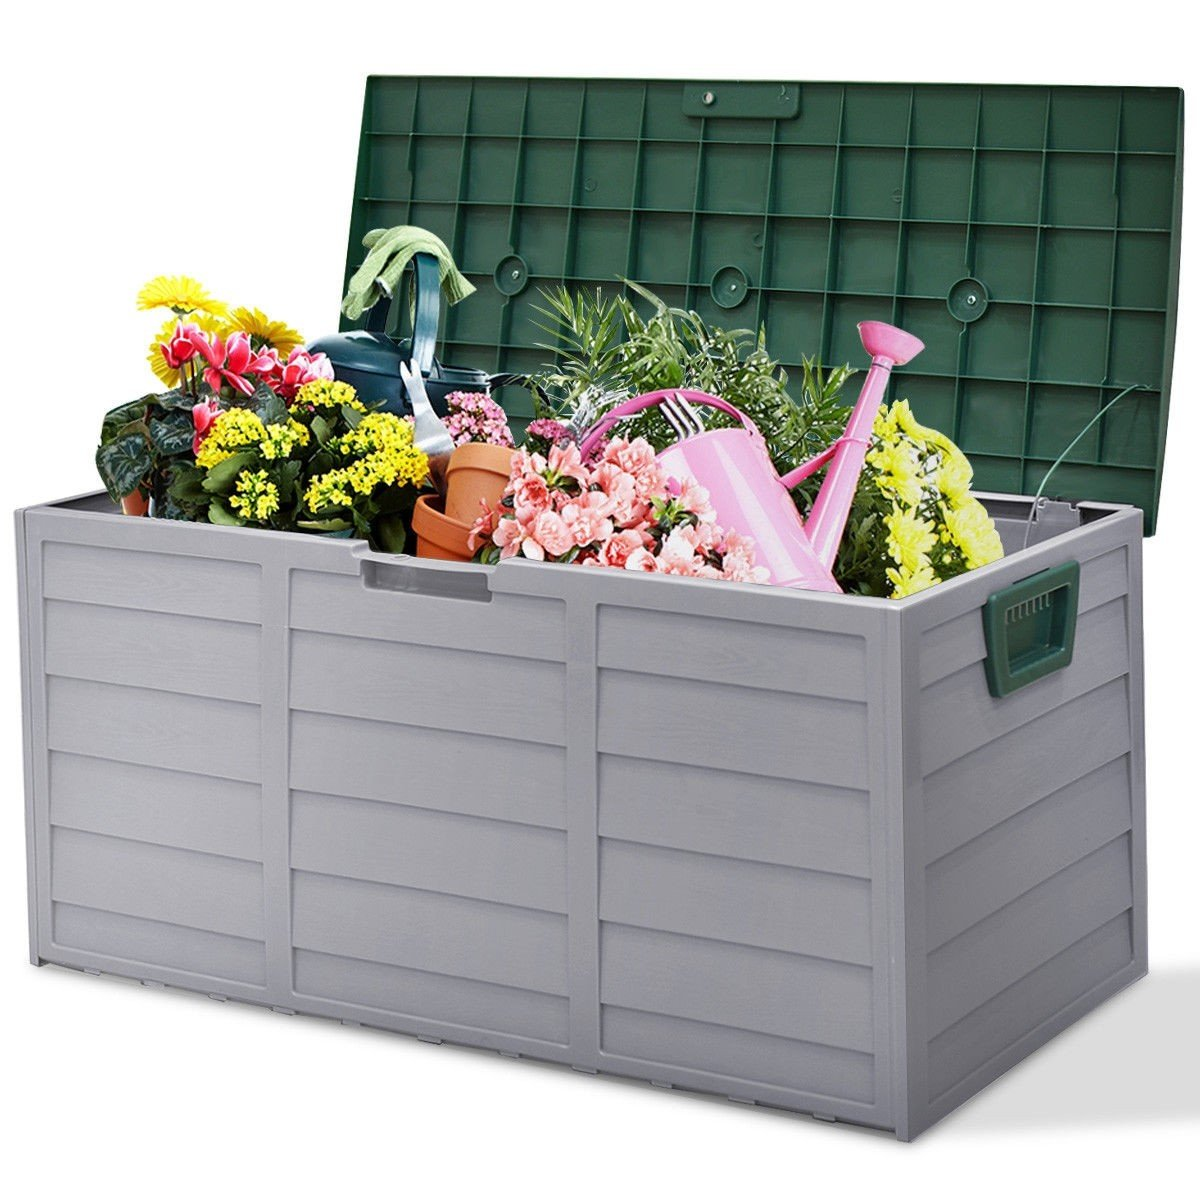 COSTWAY 70 Gallon Durable Outdoor Plasic Storage Box + FREE E-Book by COSTWAY (Image #5)